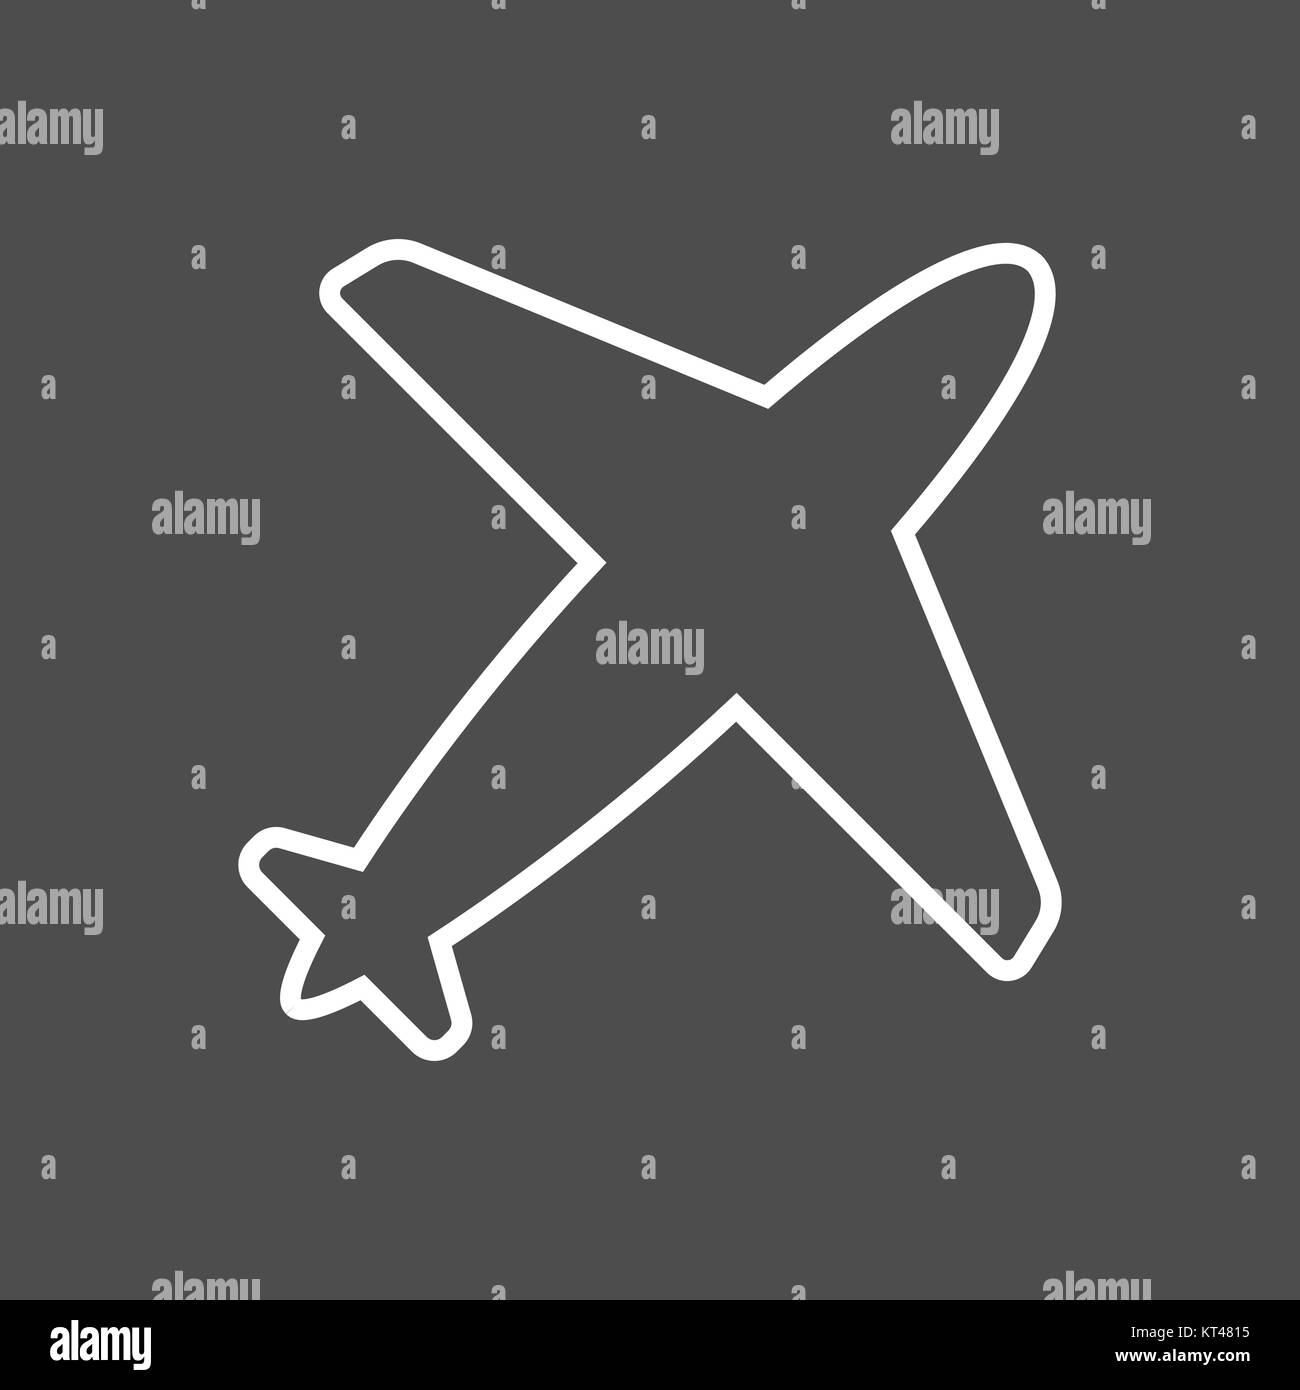 Airplane icon in thin outline style. Aviation transportation take-off travel passenger - Stock Image